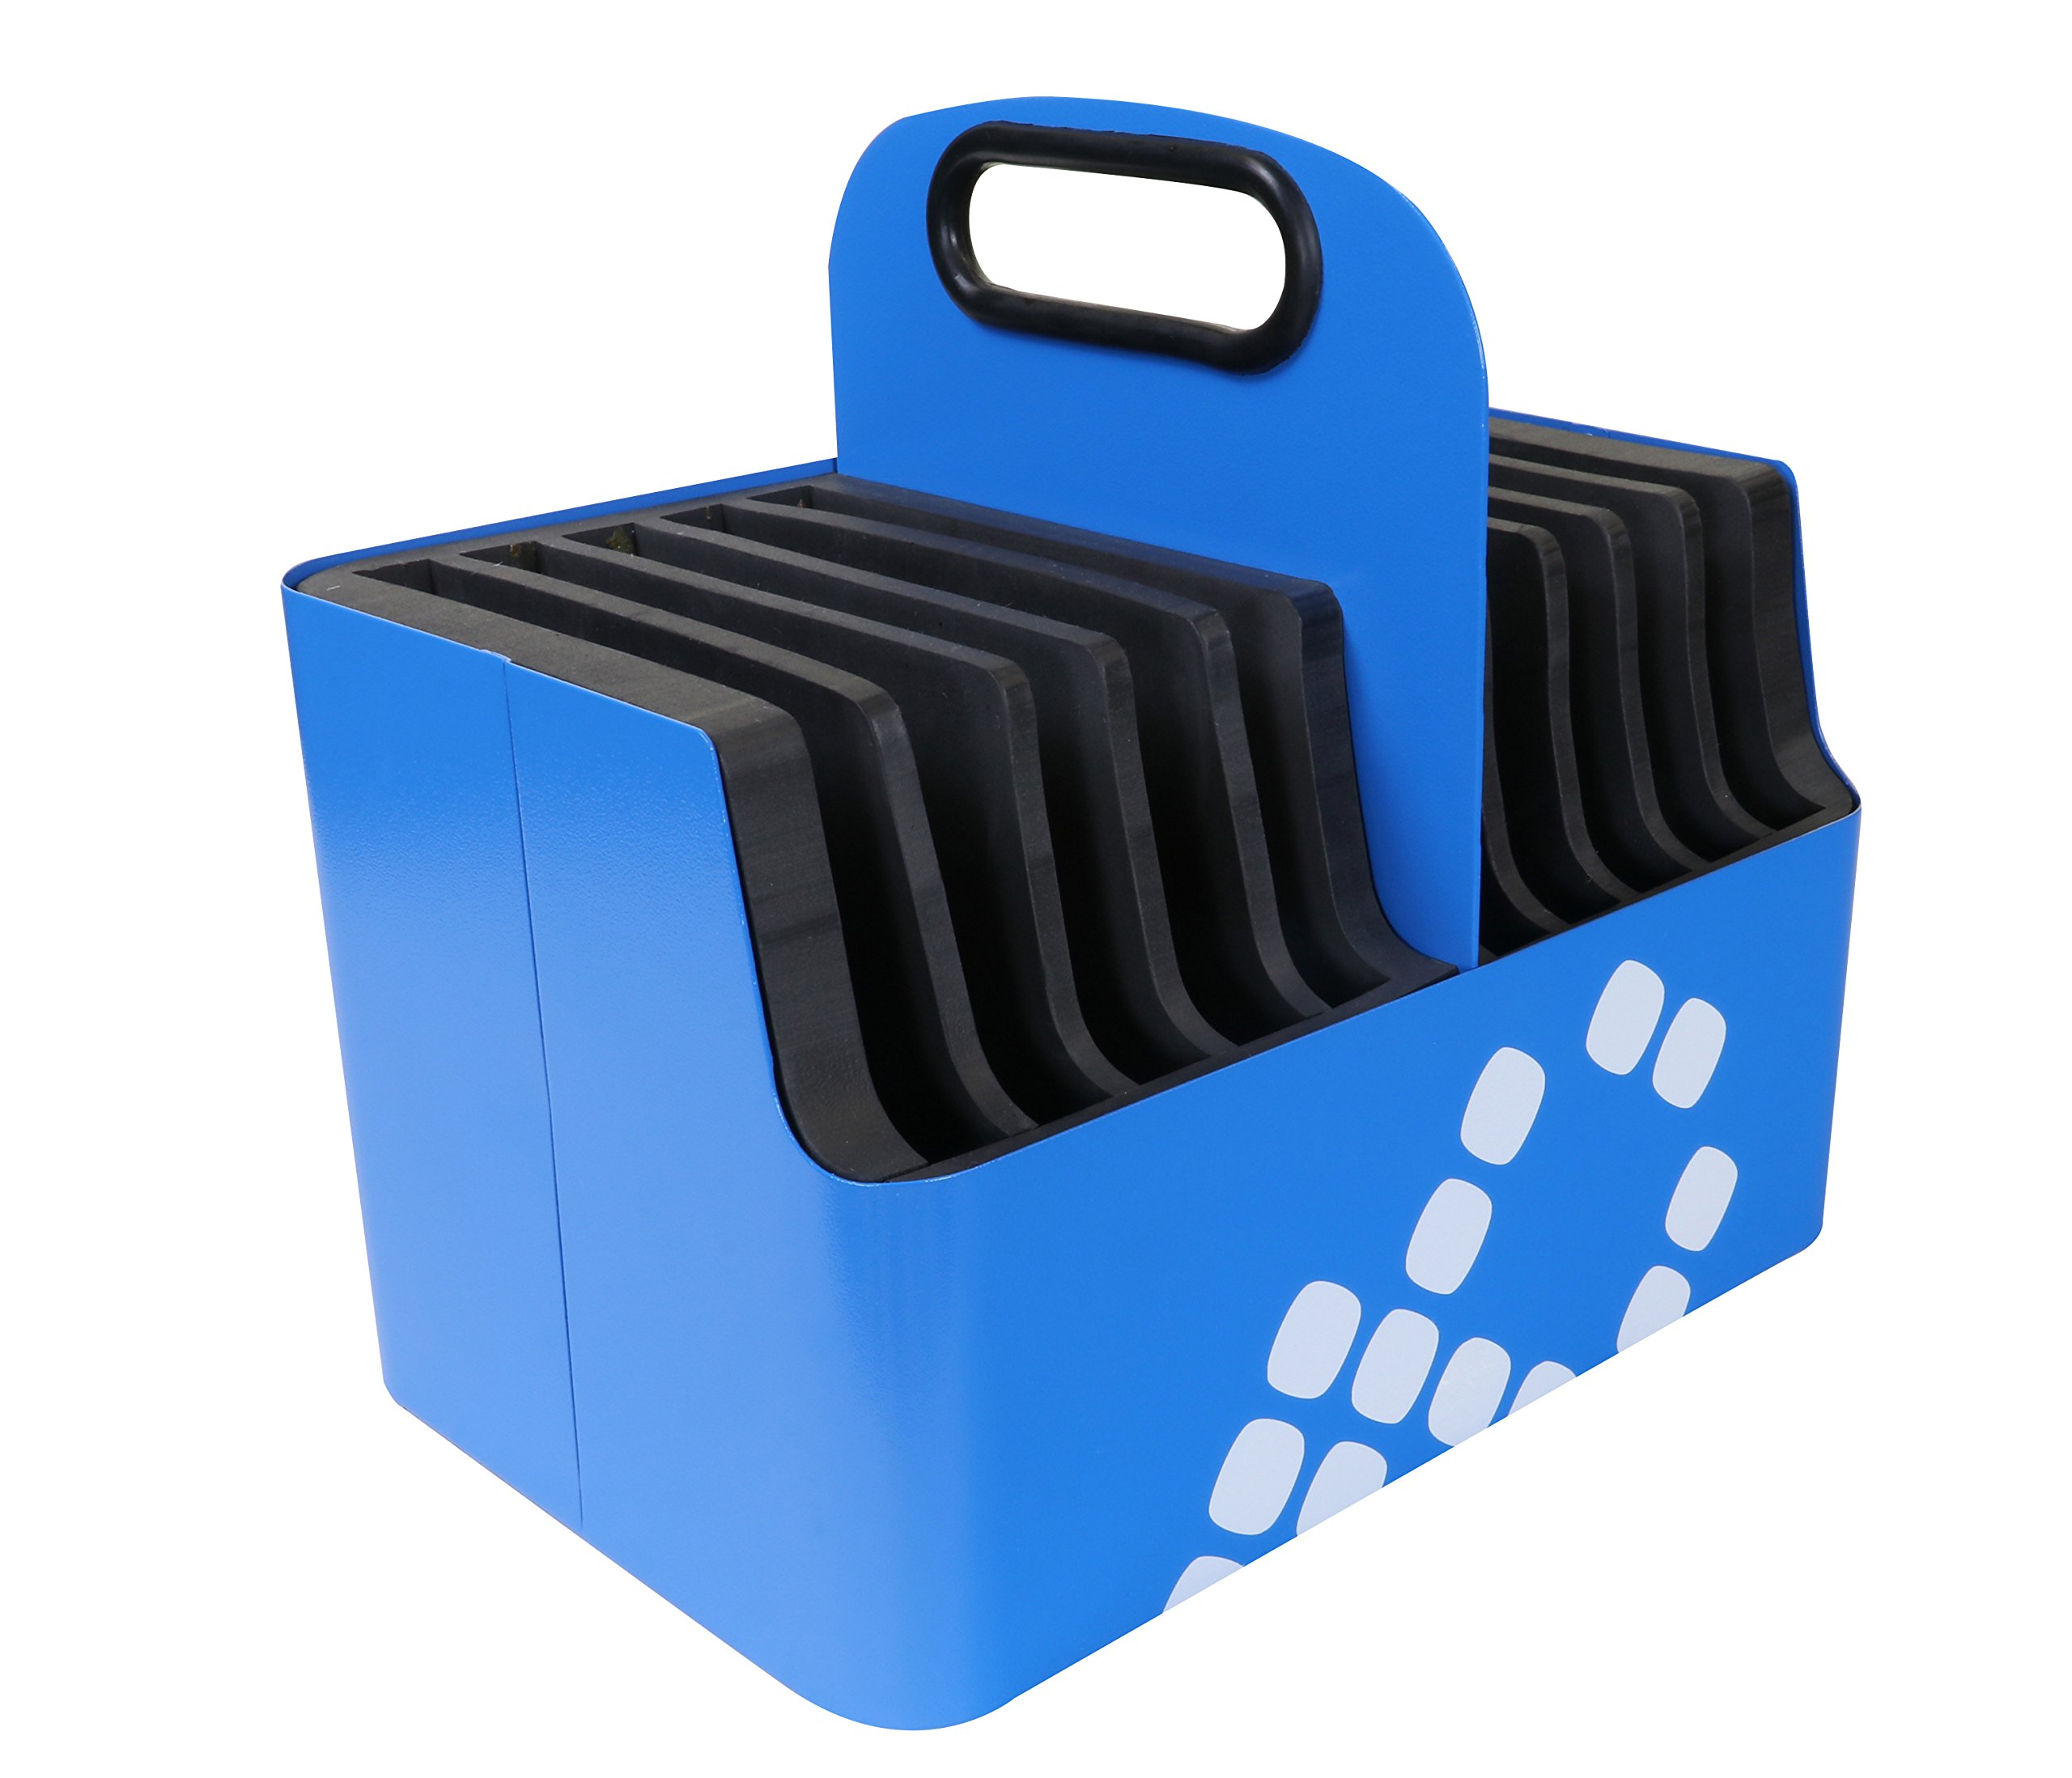 LocknCharge 10-Slot Aluminum Device Carry Basket - with Padded Slots, 8'' Height, 7'' Wide, 9'' Length, Blue (10025) by LocknCharge